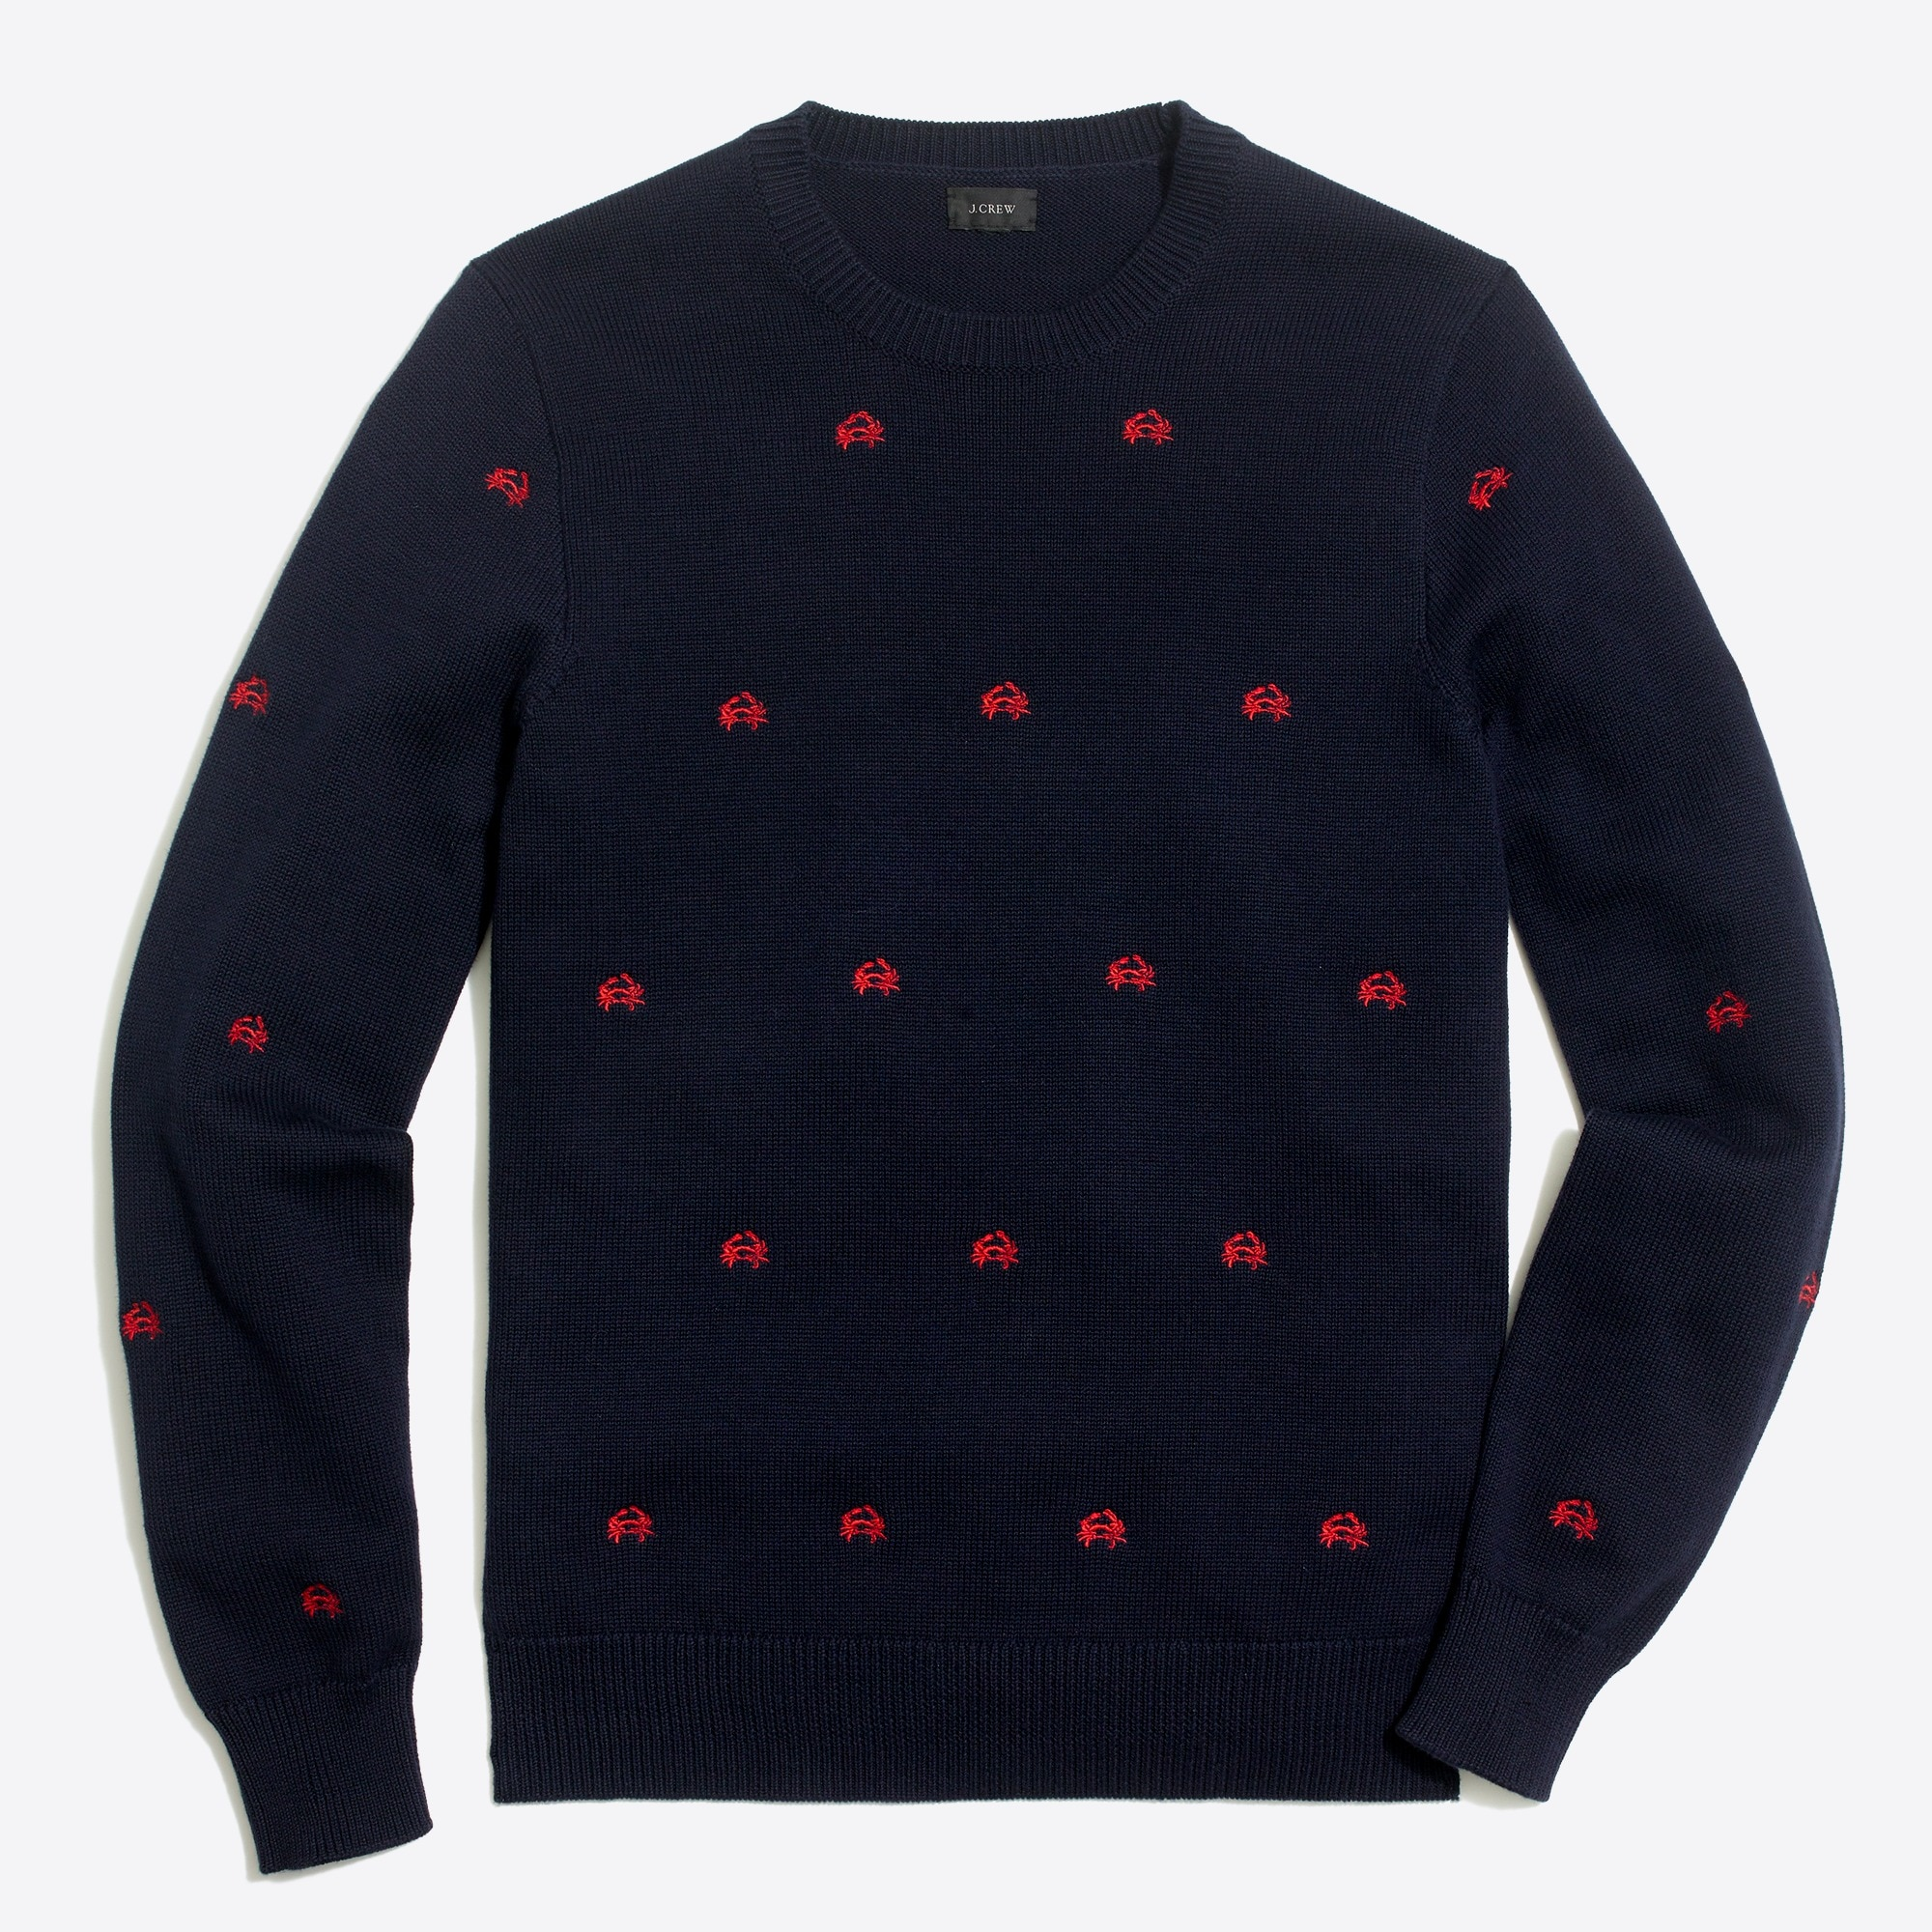 Embroidered crab sweater